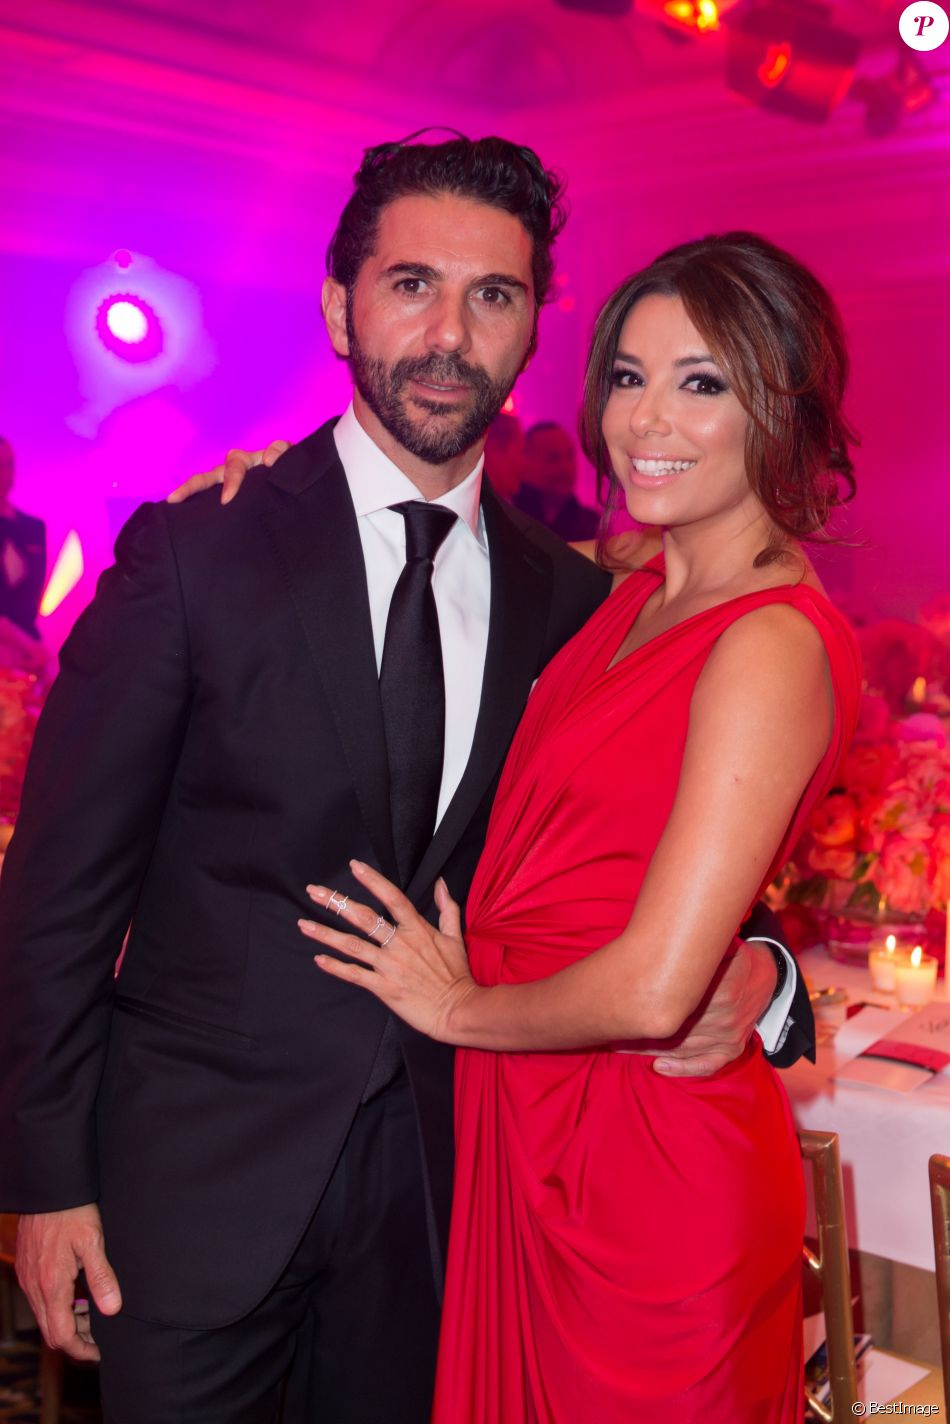 Exclusif - Eva Longoria (robe Monsoori, bijoux Messika) et son compagnon Jose Antonio Baston - Dîner du Global Gift Gala au profit de L'Unicef France Frimousses de Créateurs, de The Global Gift Foundation et The Eva Longoria Foundation, organisé au Four Seasons Hôtel George V à Paris, le 25 mai 2015.